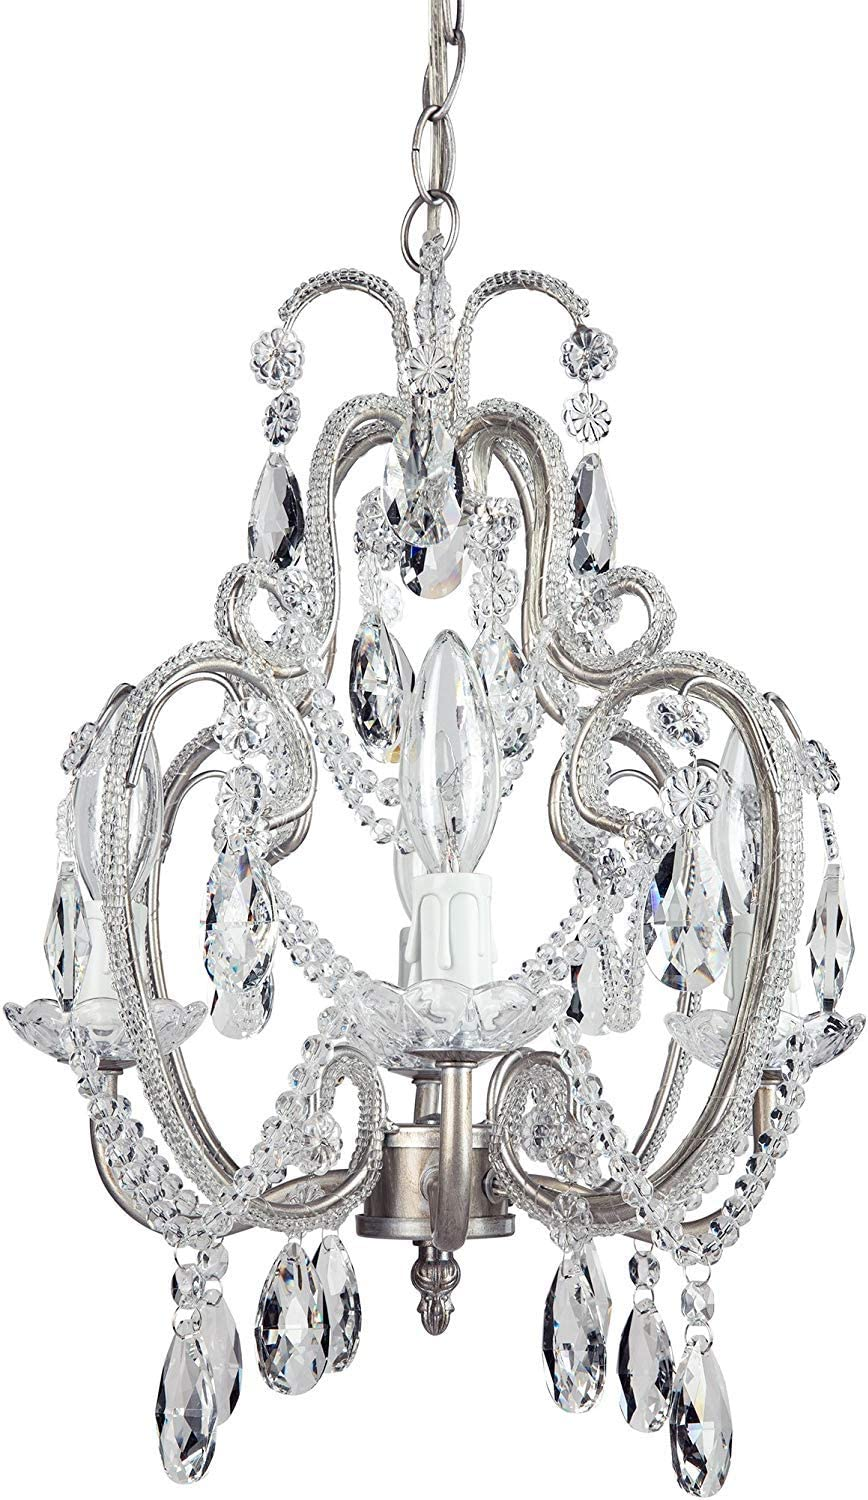 Top 10 Best Chandelier For Baby Girl Nursery (2020 Reviews & Buying Guide) 7